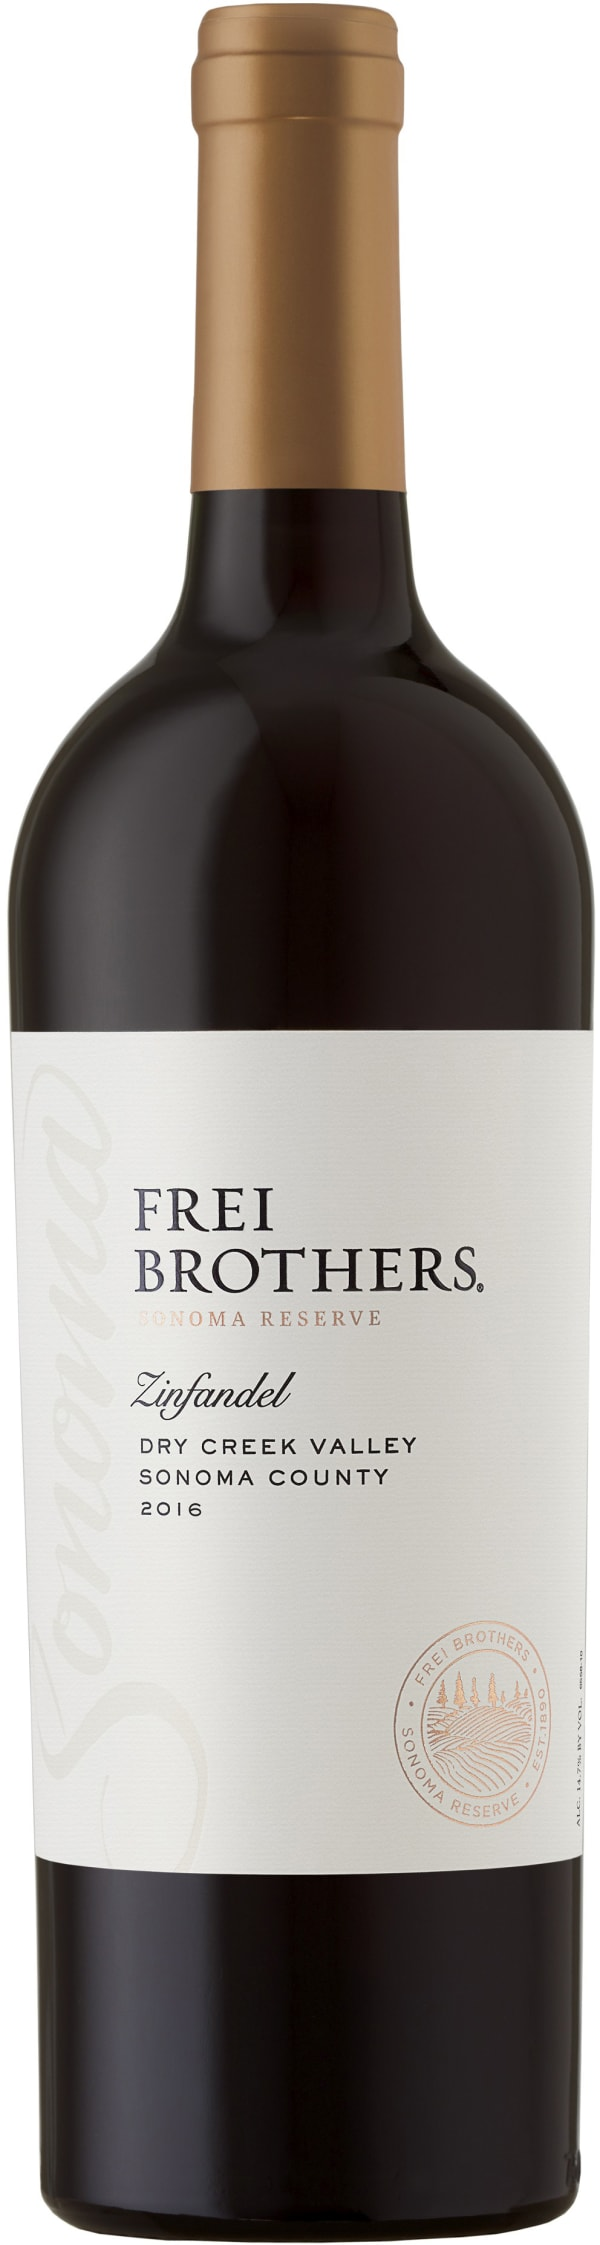 Frei Brothers Reserve Zinfandel Dry Creek Valley 2016